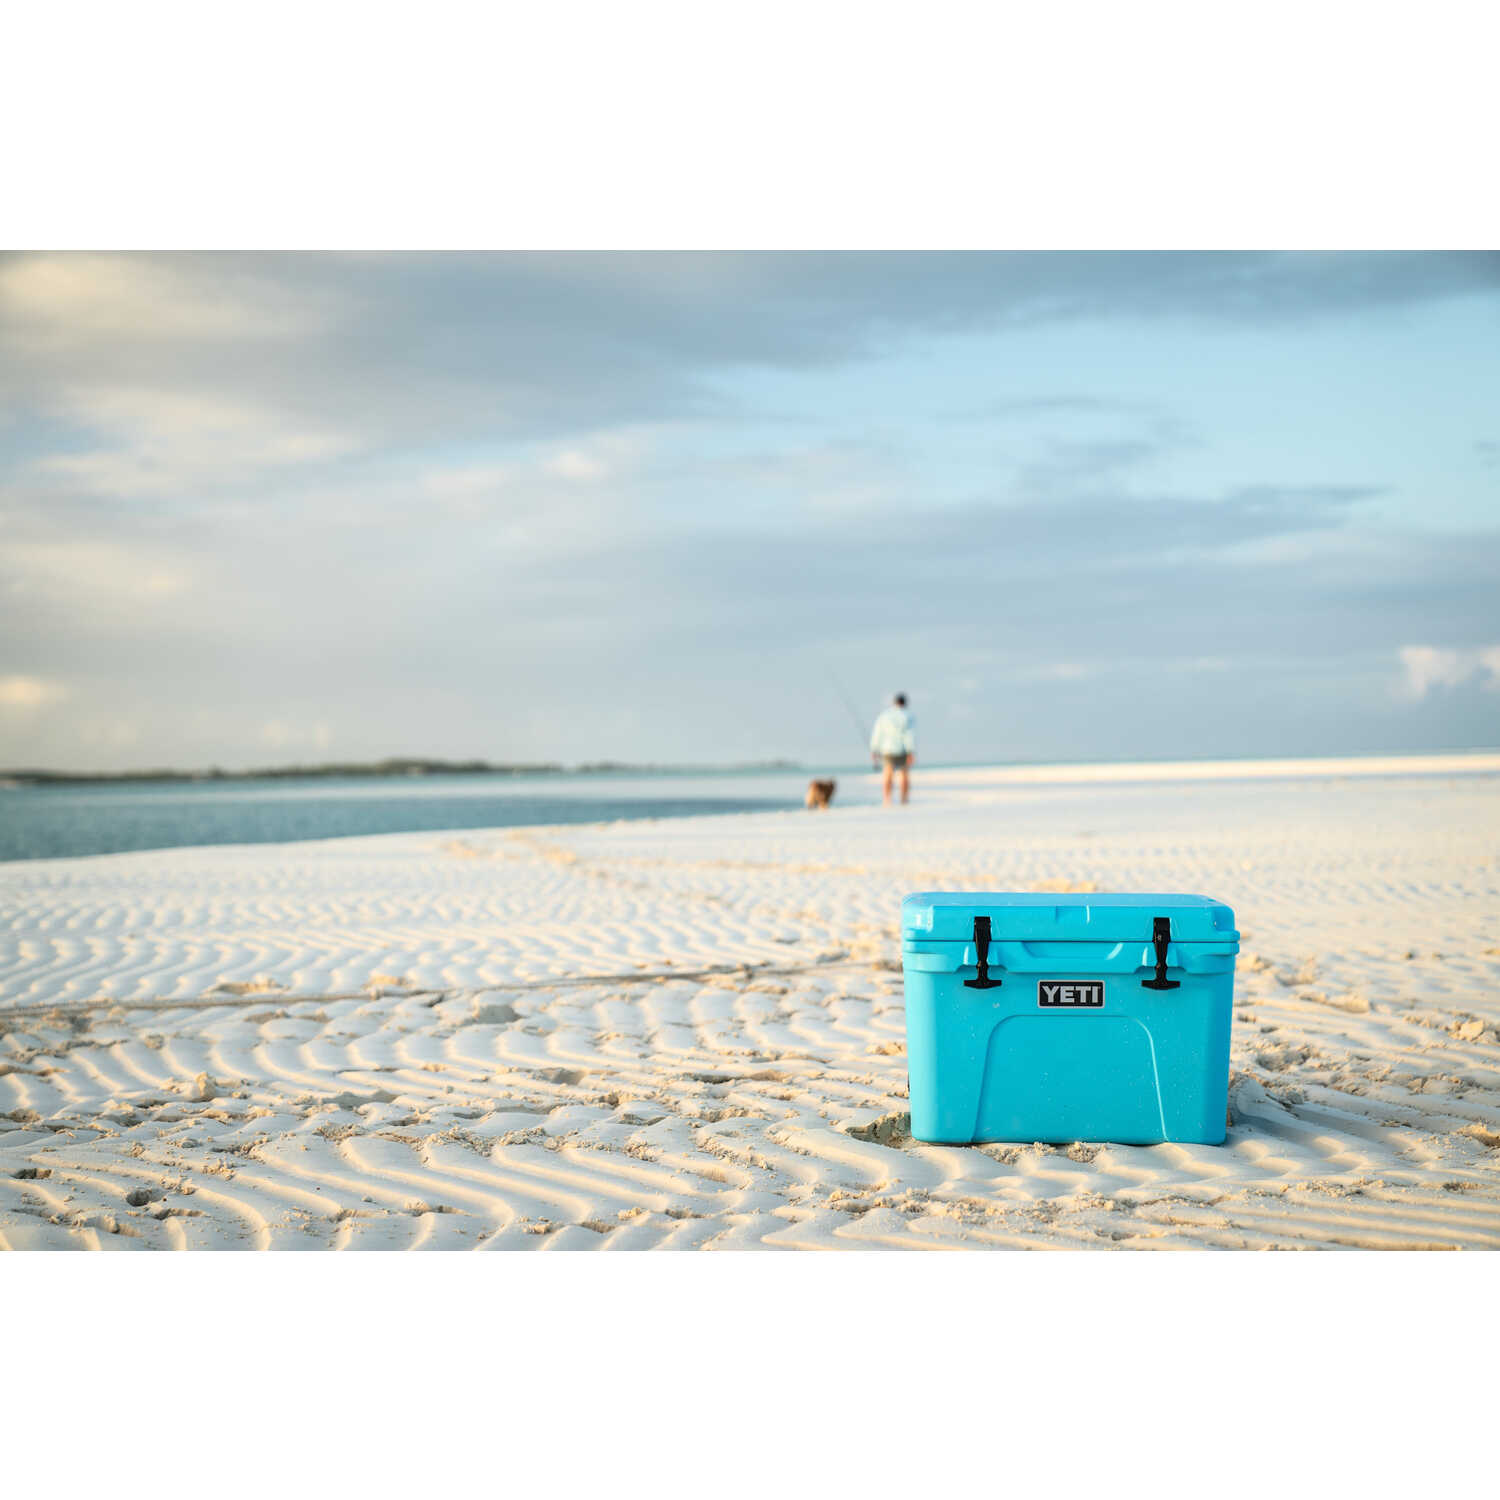 YETI  Tundra 35  Cooler  Reef Blue